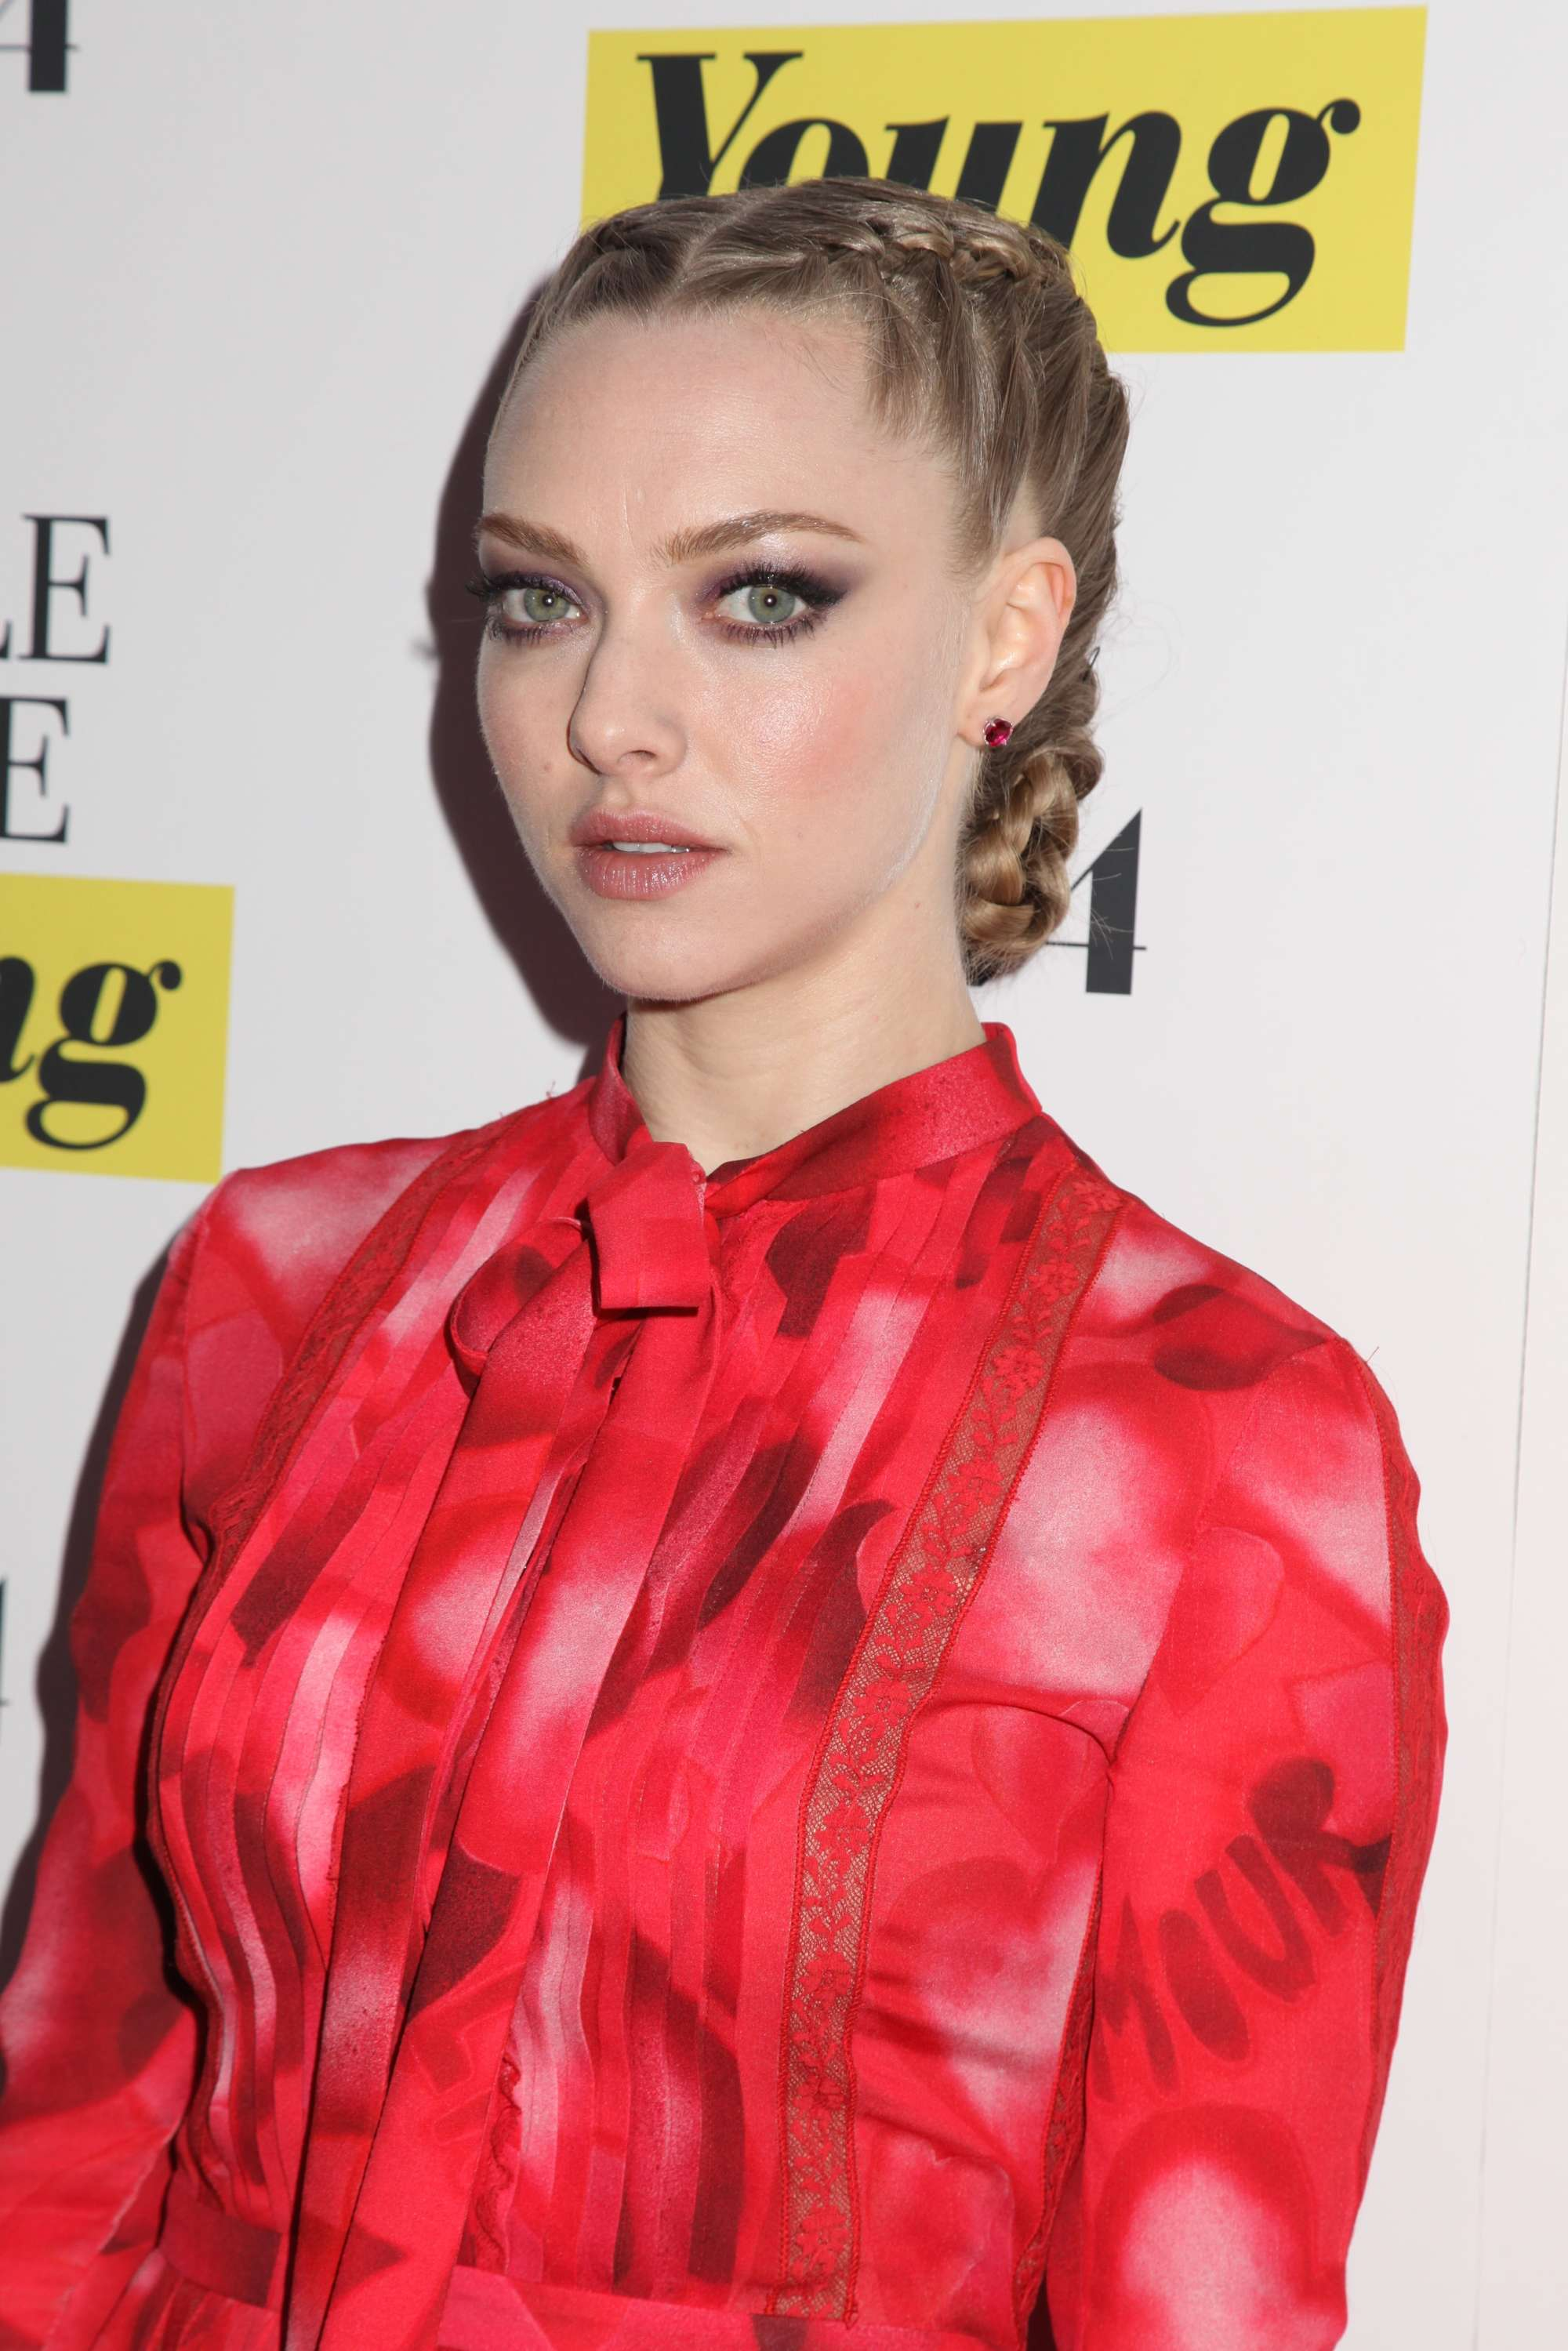 prom updos: amanda seyfried on the red carpet with double dutch braided bun updo wearing red dress